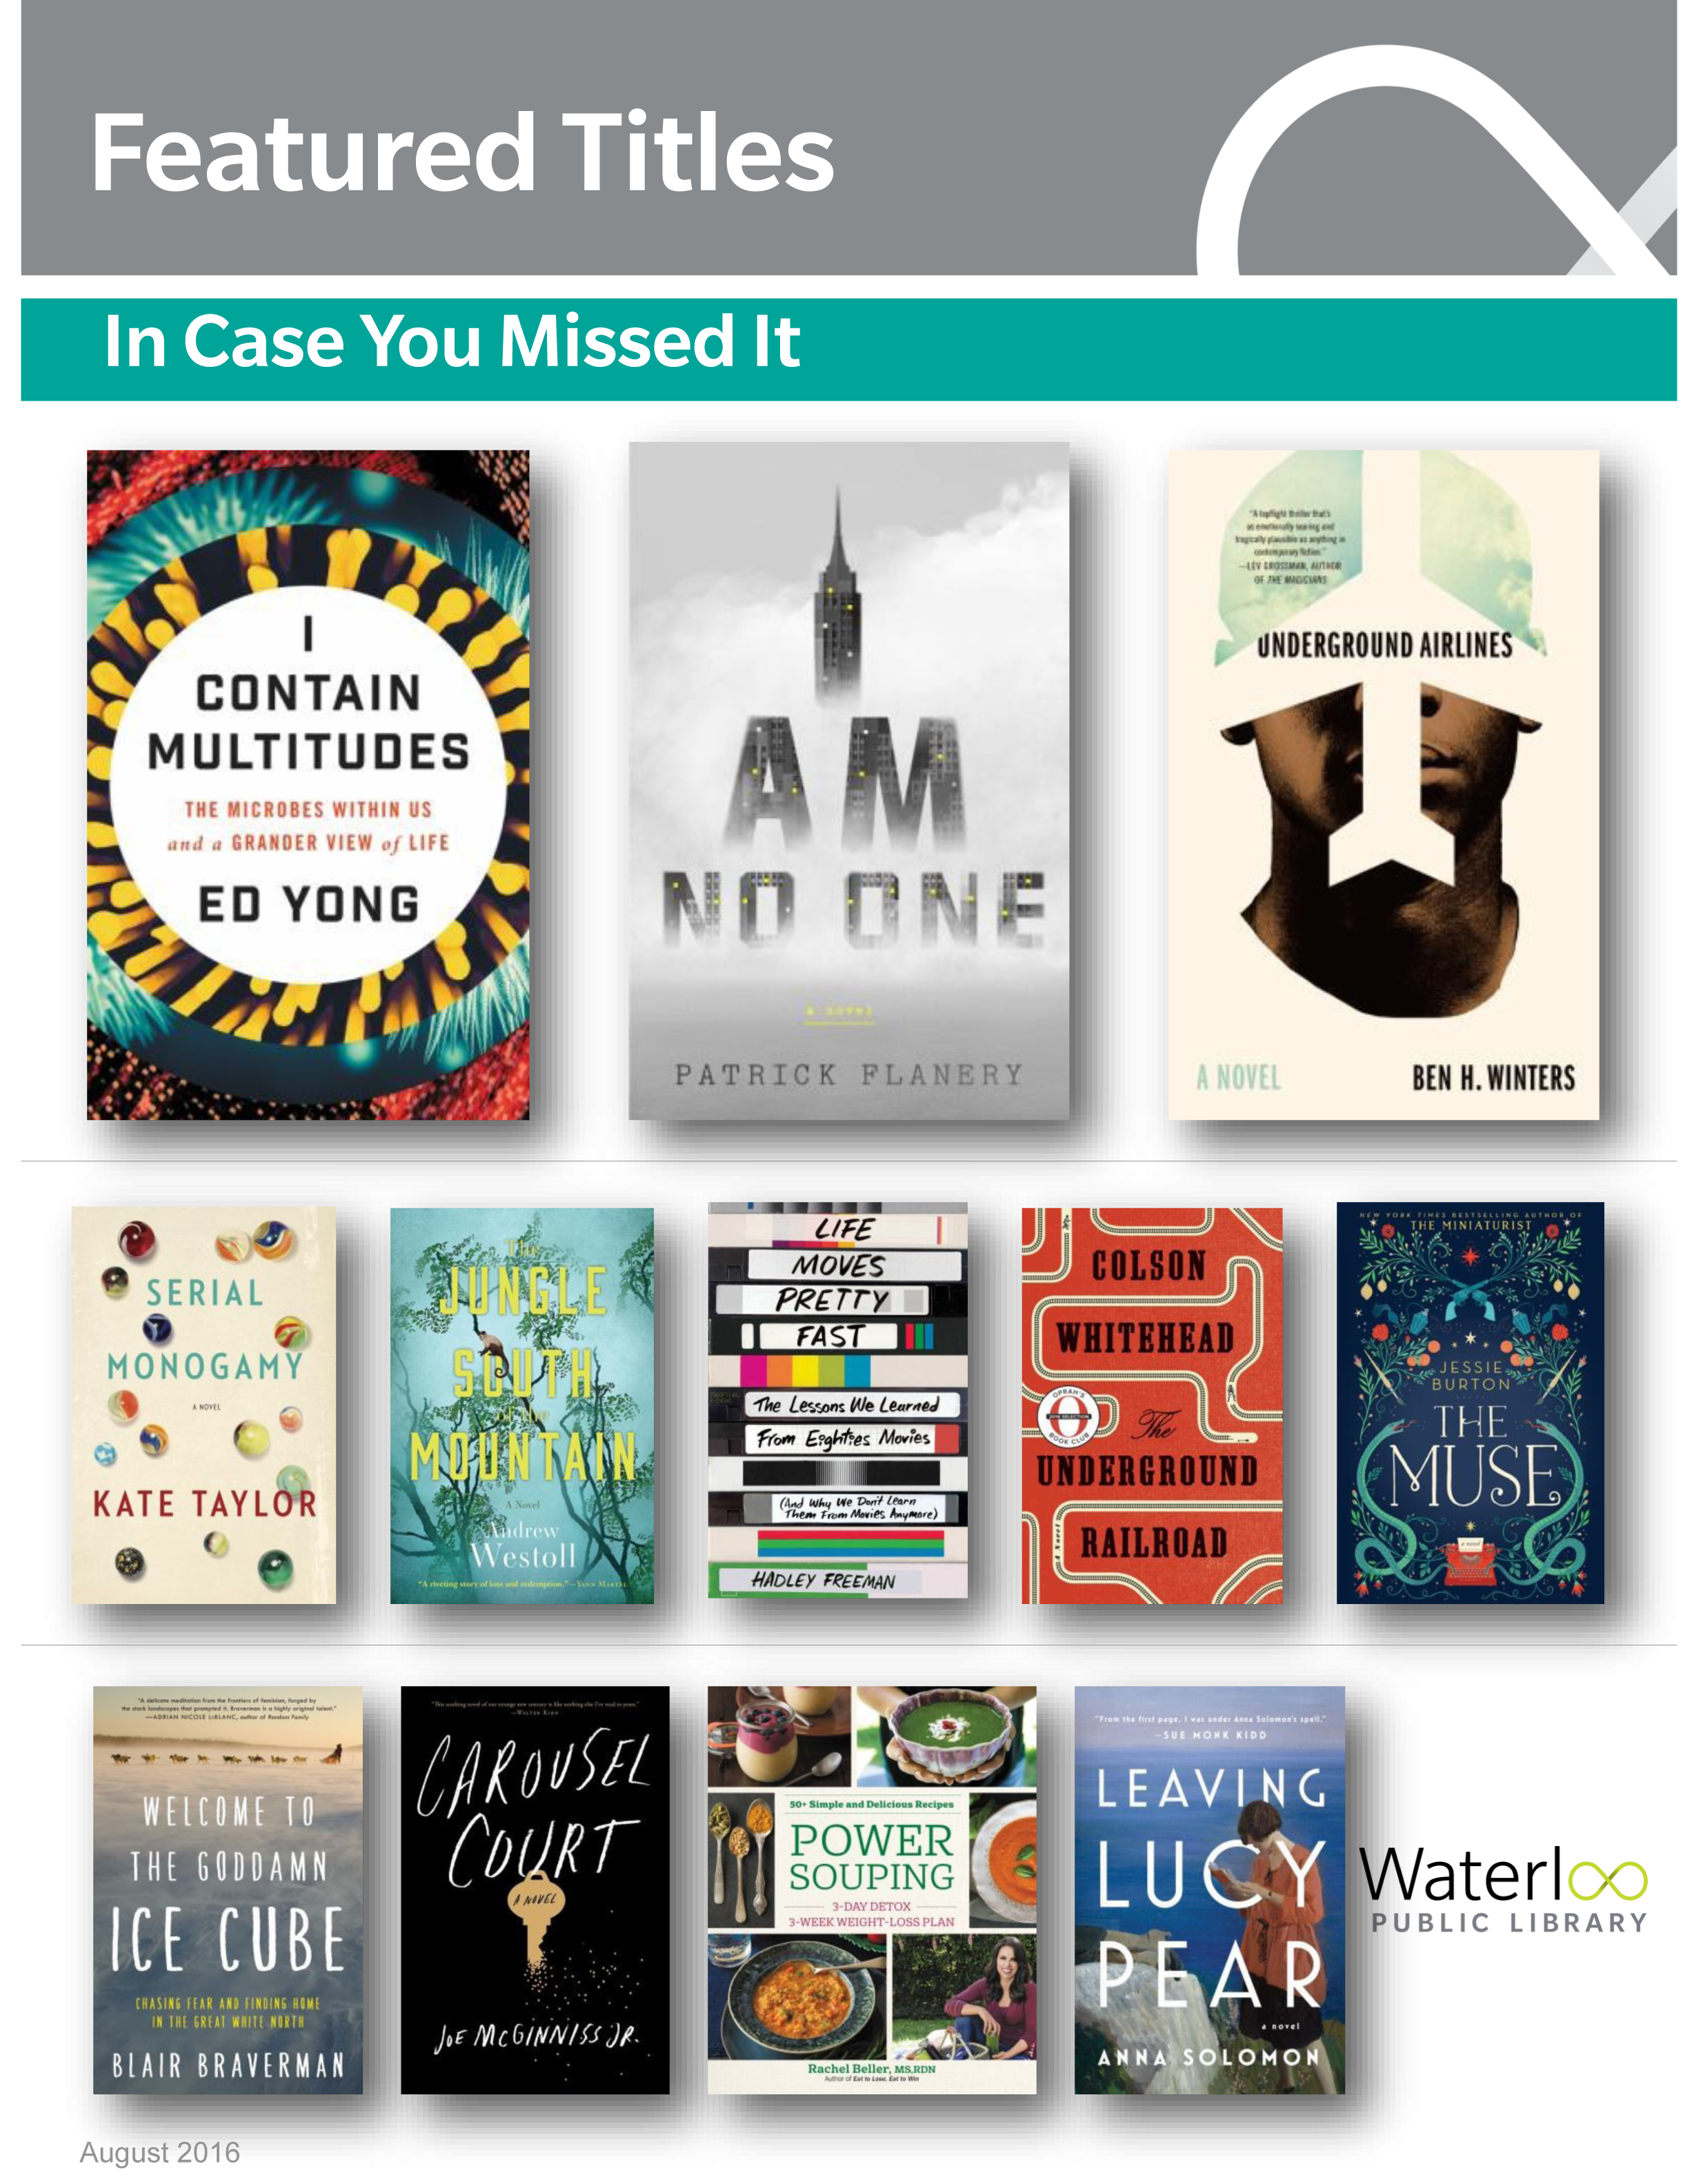 Staff Picks/Featured Titles: In Case You Missed It